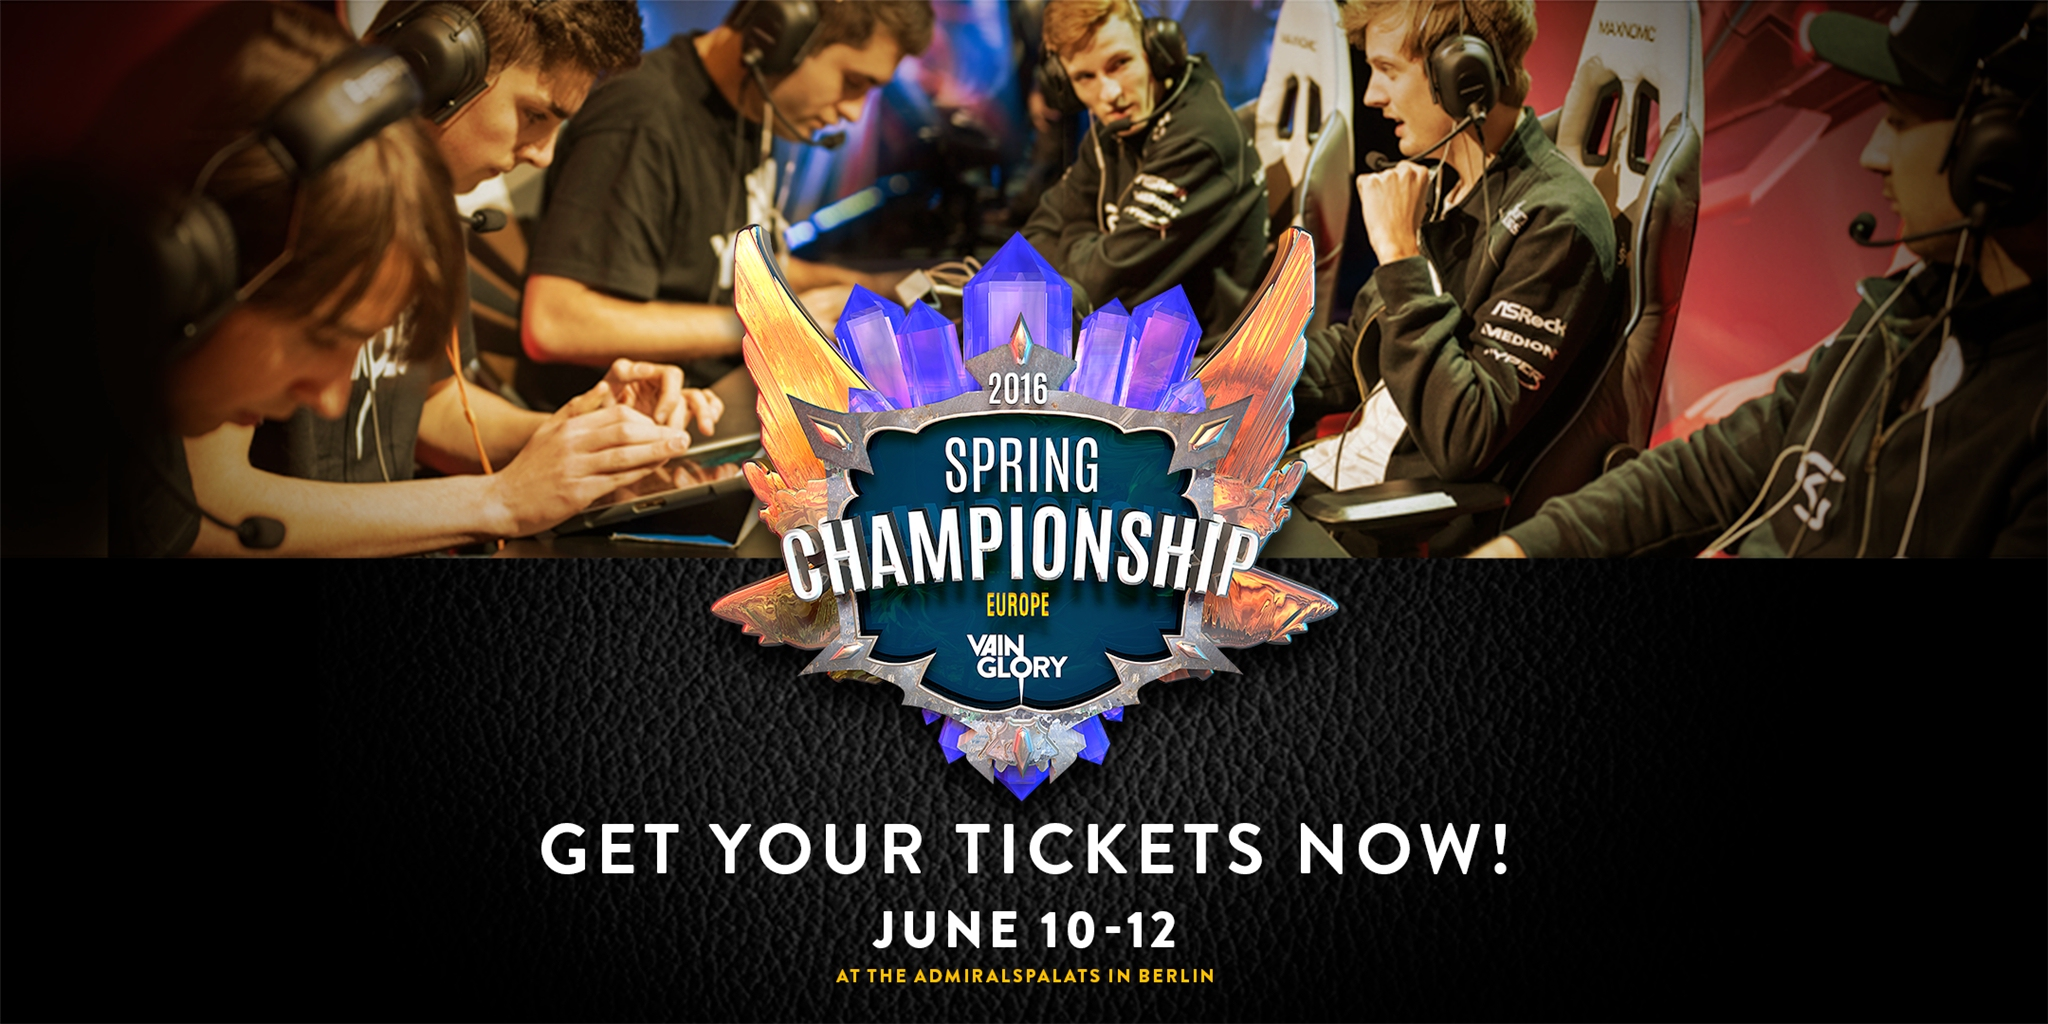 Vainglory Spring Season Championships going to Hollywood and Berlin in June